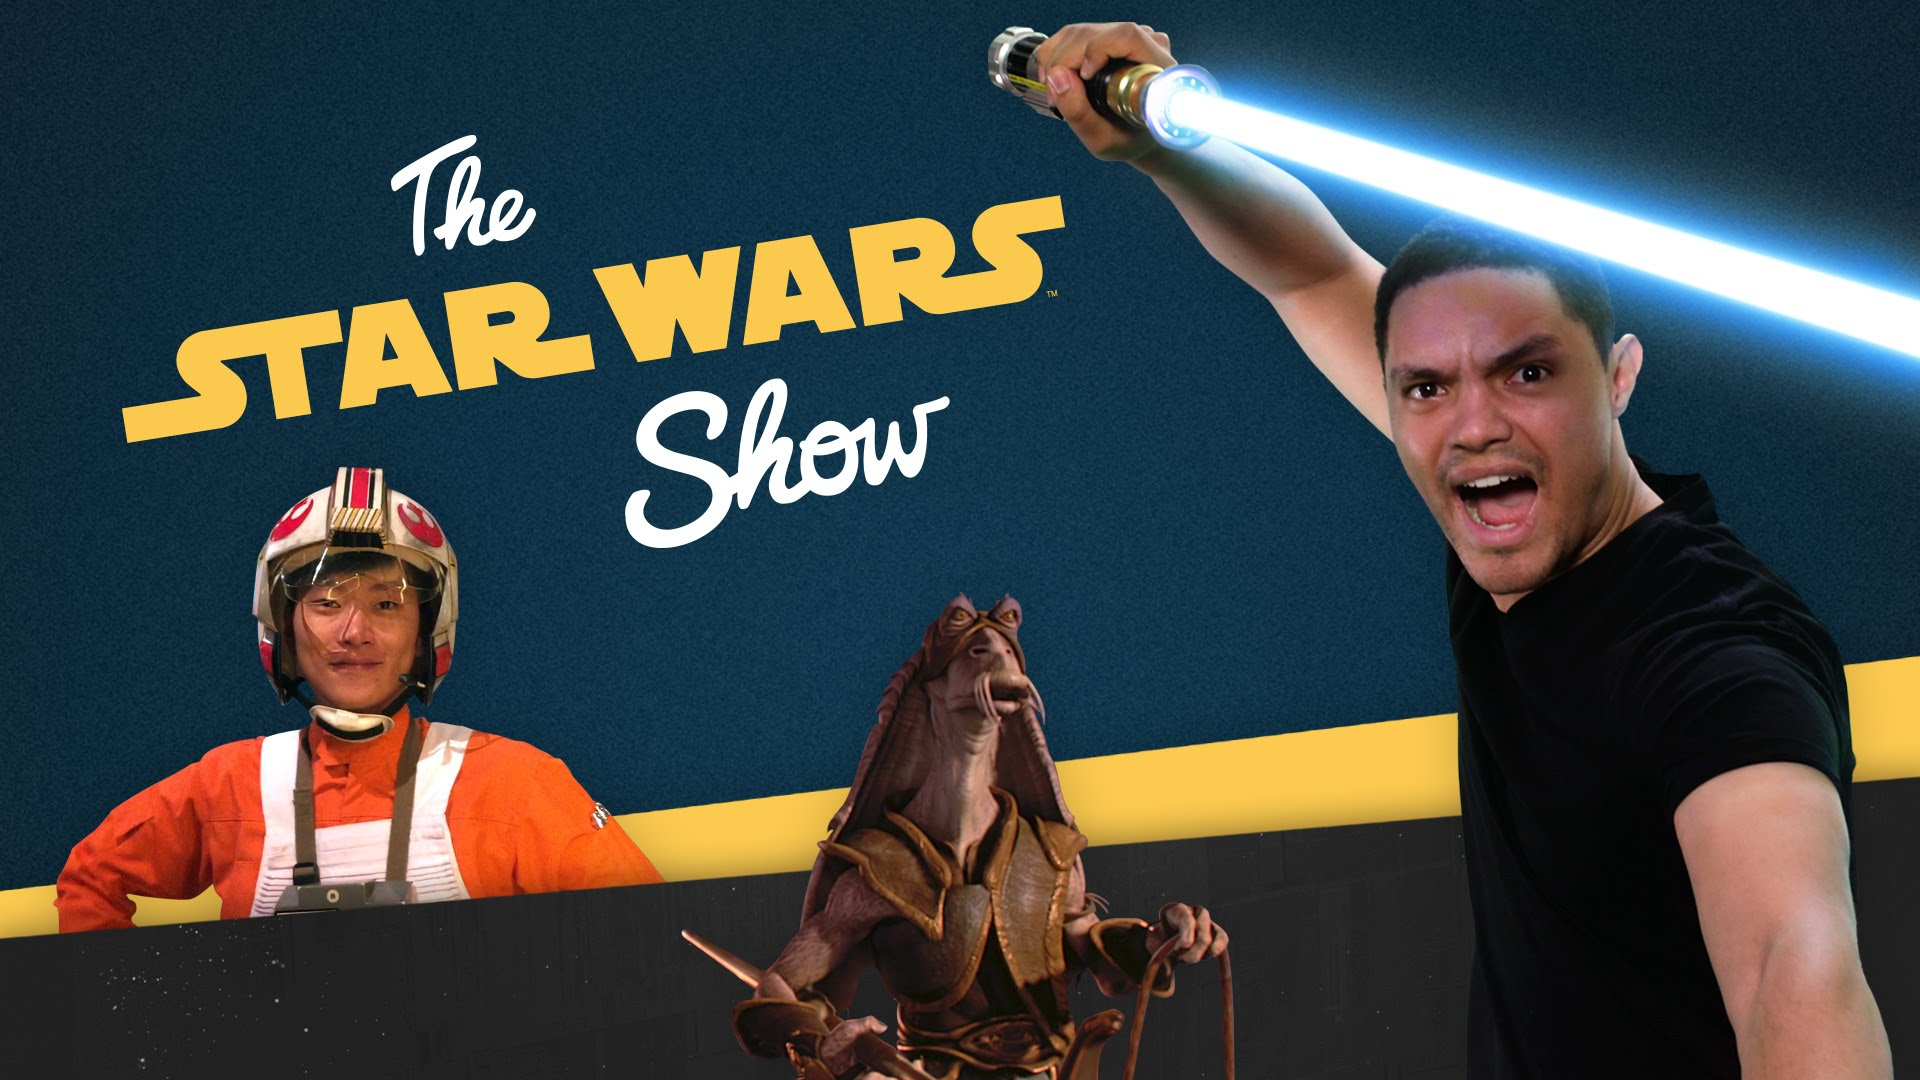 Trevor Noah Interview, Star Wars at Shanghai Disneyland, and More | The Star Wars Show